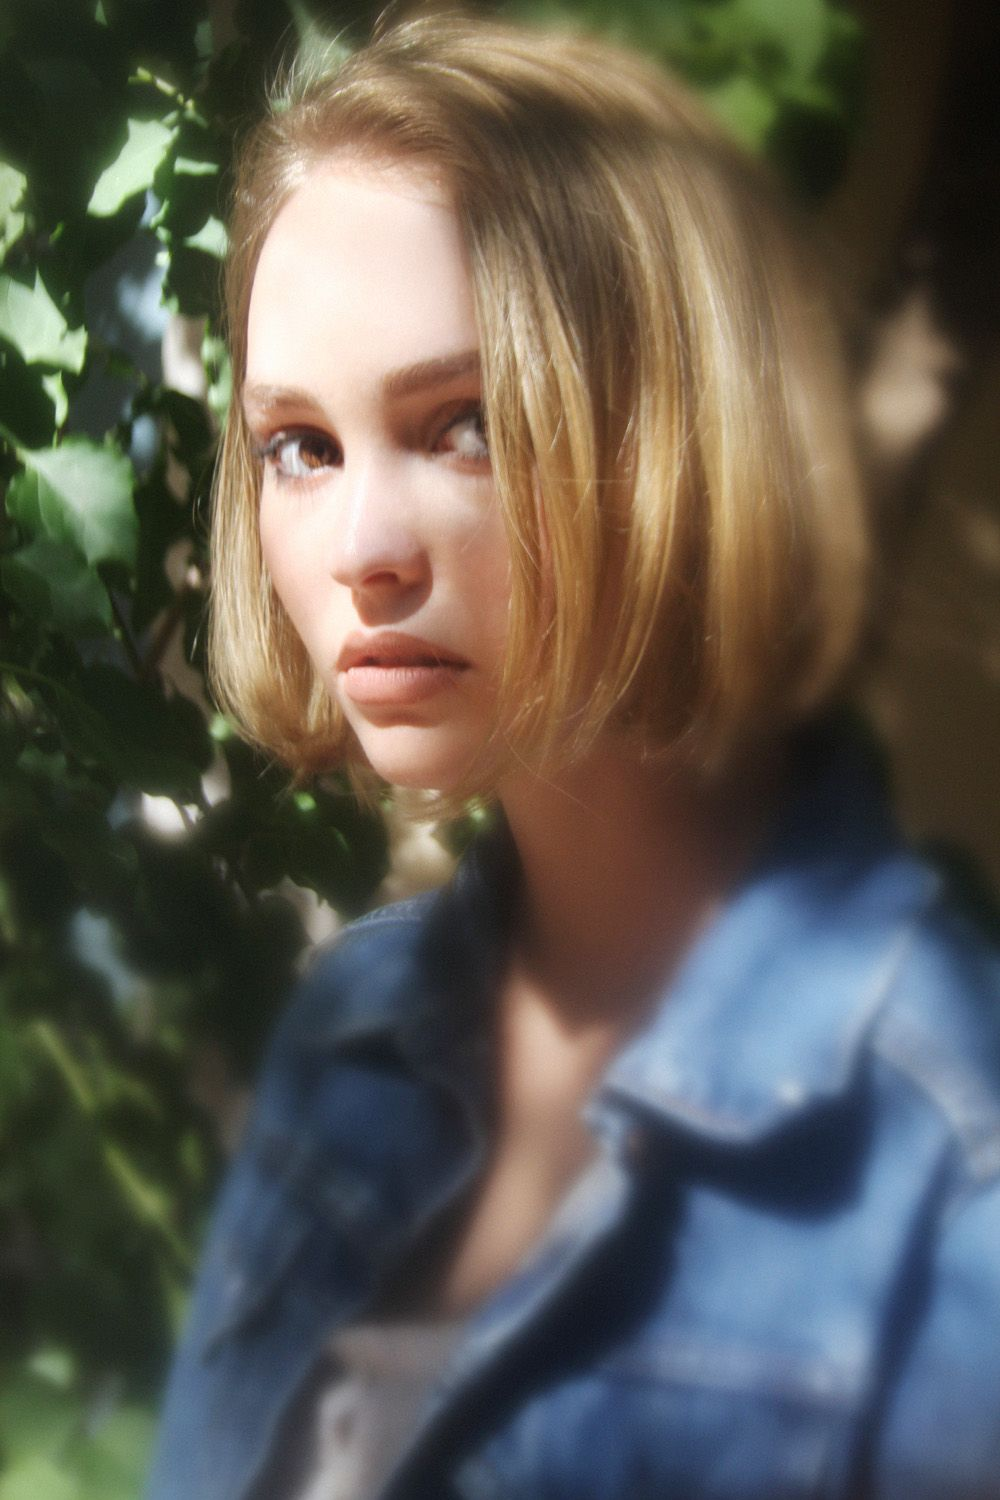 dress - Rose lily depp oyster magazine video